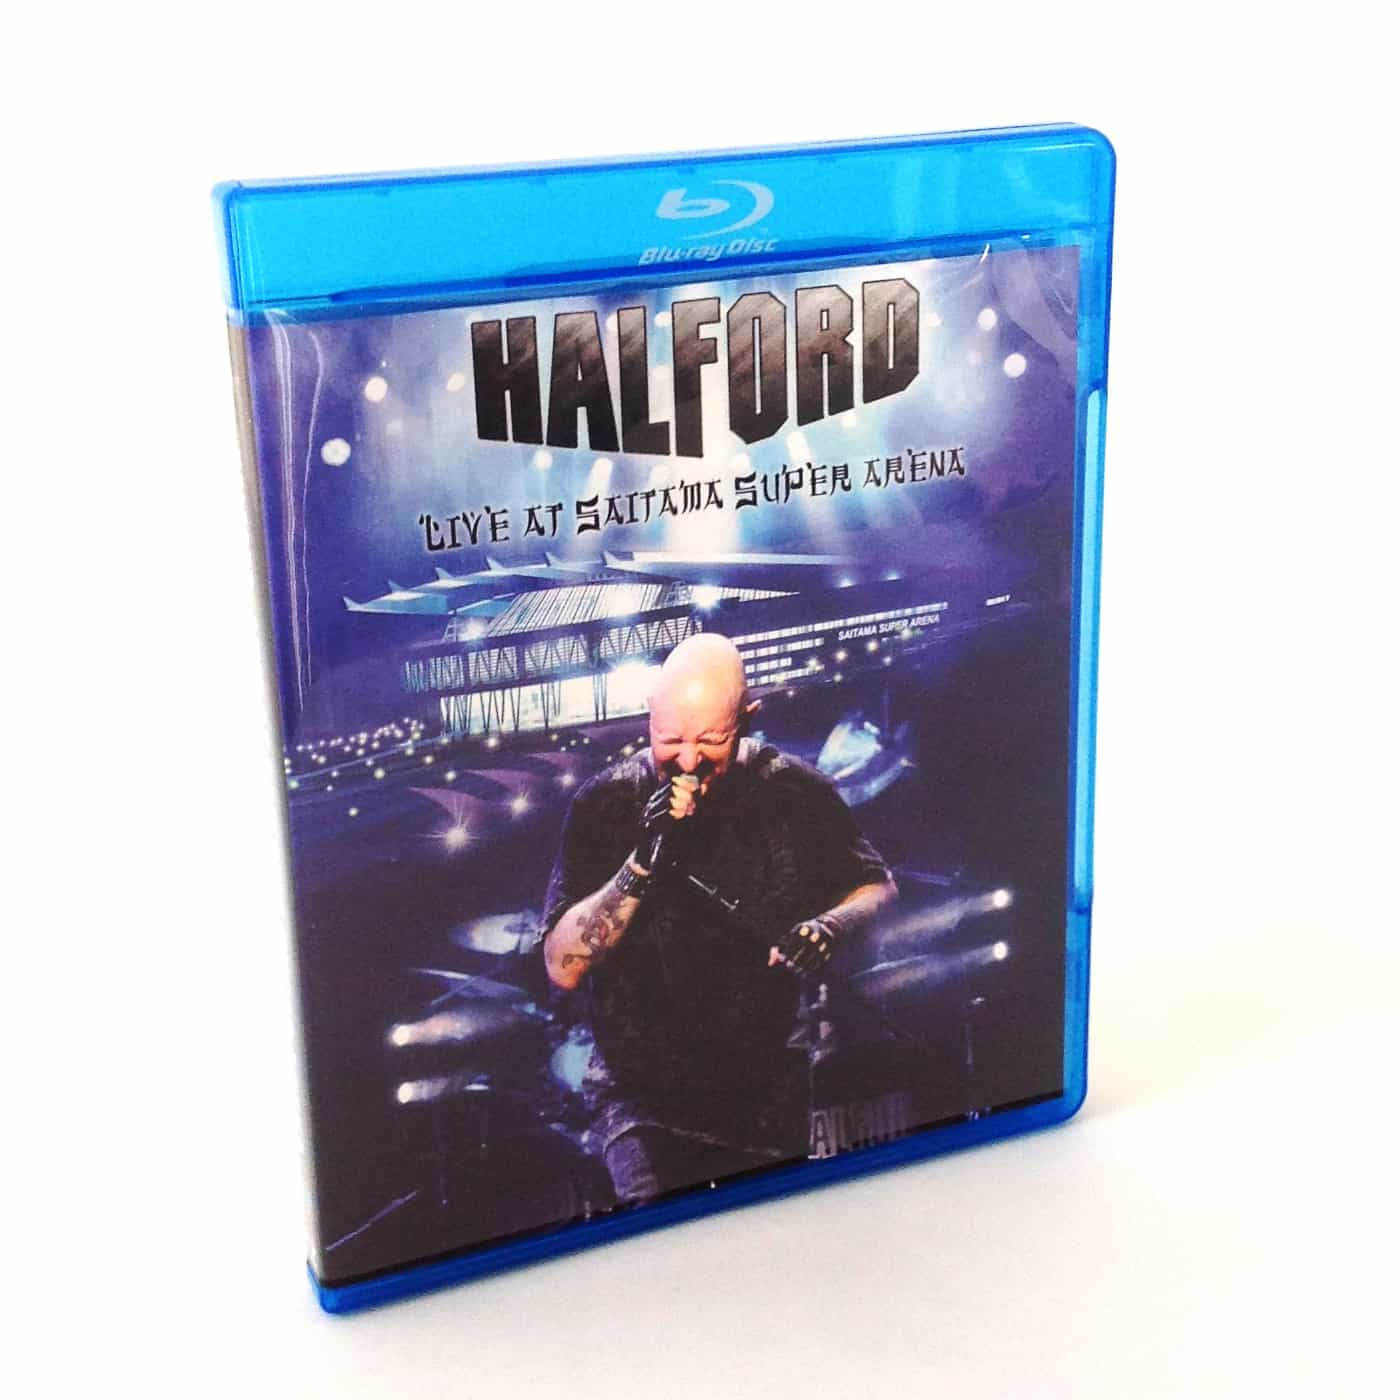 Halford Blu Ray Disc Replication by OMM